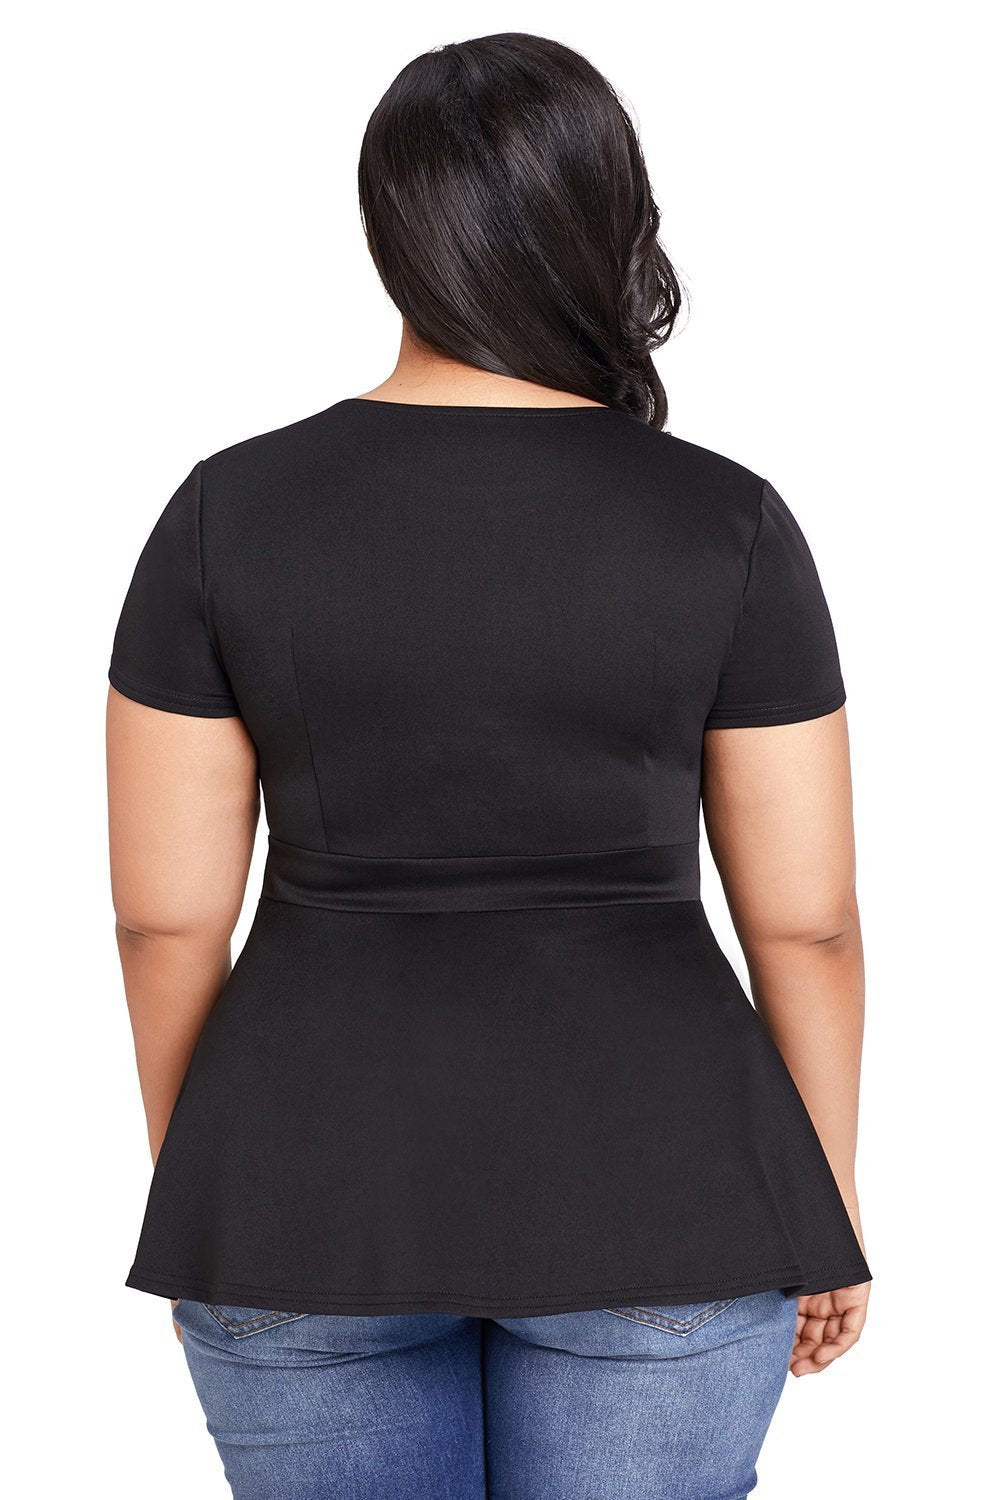 plus size T-Shirt XL / AUS 14 - 16 / Black zzz. Jacinta Caged Top